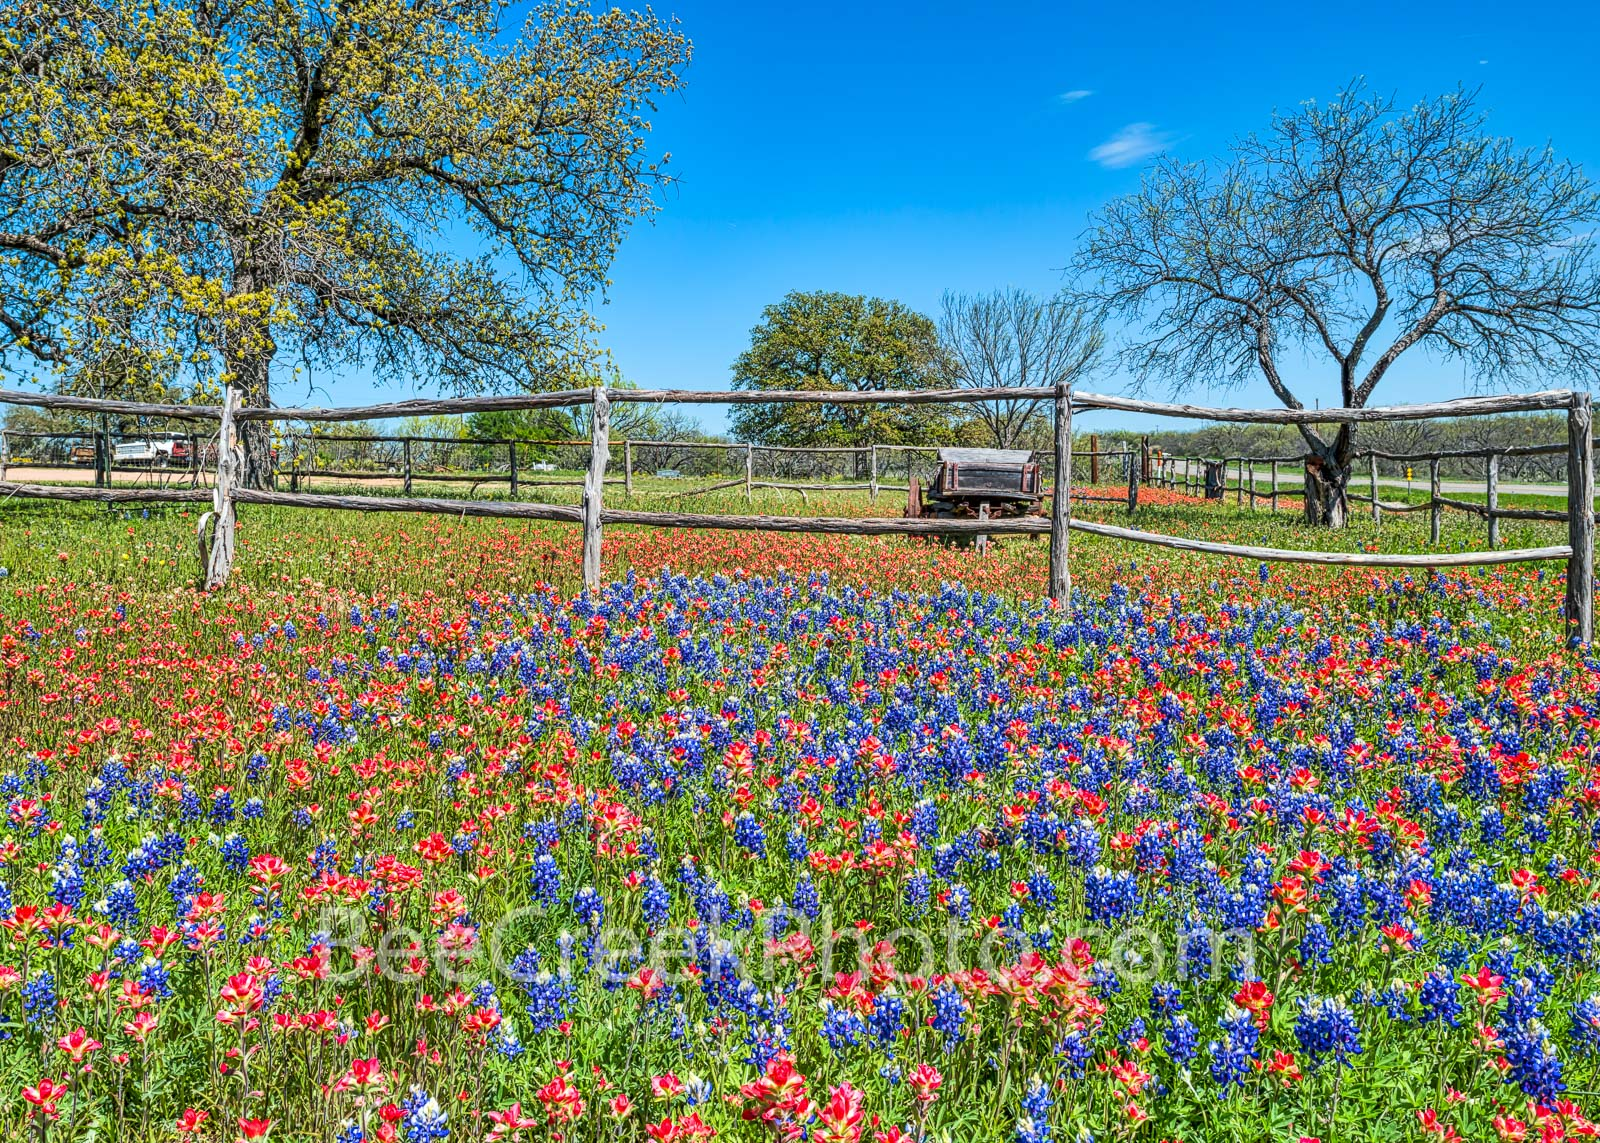 Old wagon, bluebonnet, bluebonnet landscape, indian paintbrush, wildflower, wildflowers, roadside. Hill country, Texas, images of texas, spring flowers, springtime, spring, landscape,